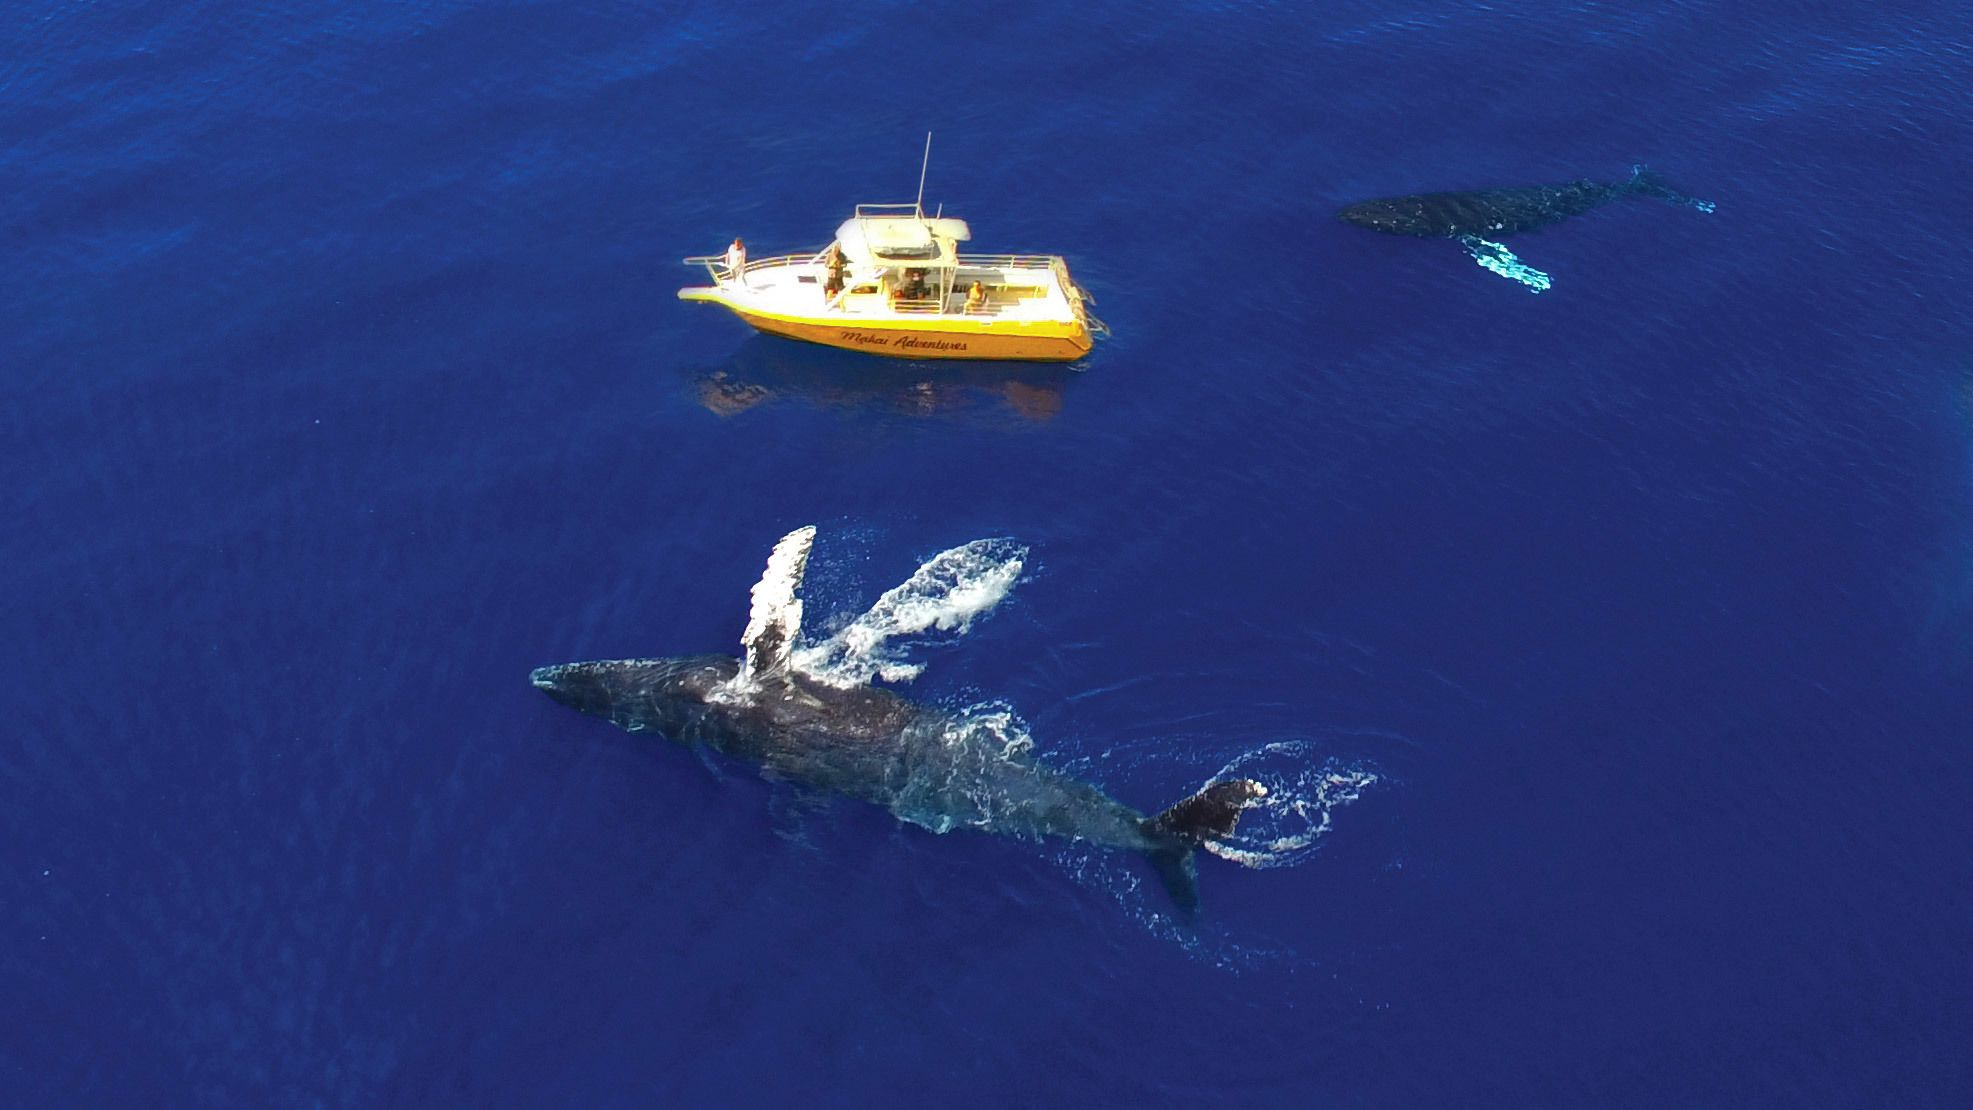 Aerial view of Humpback Whales next to a charter boat